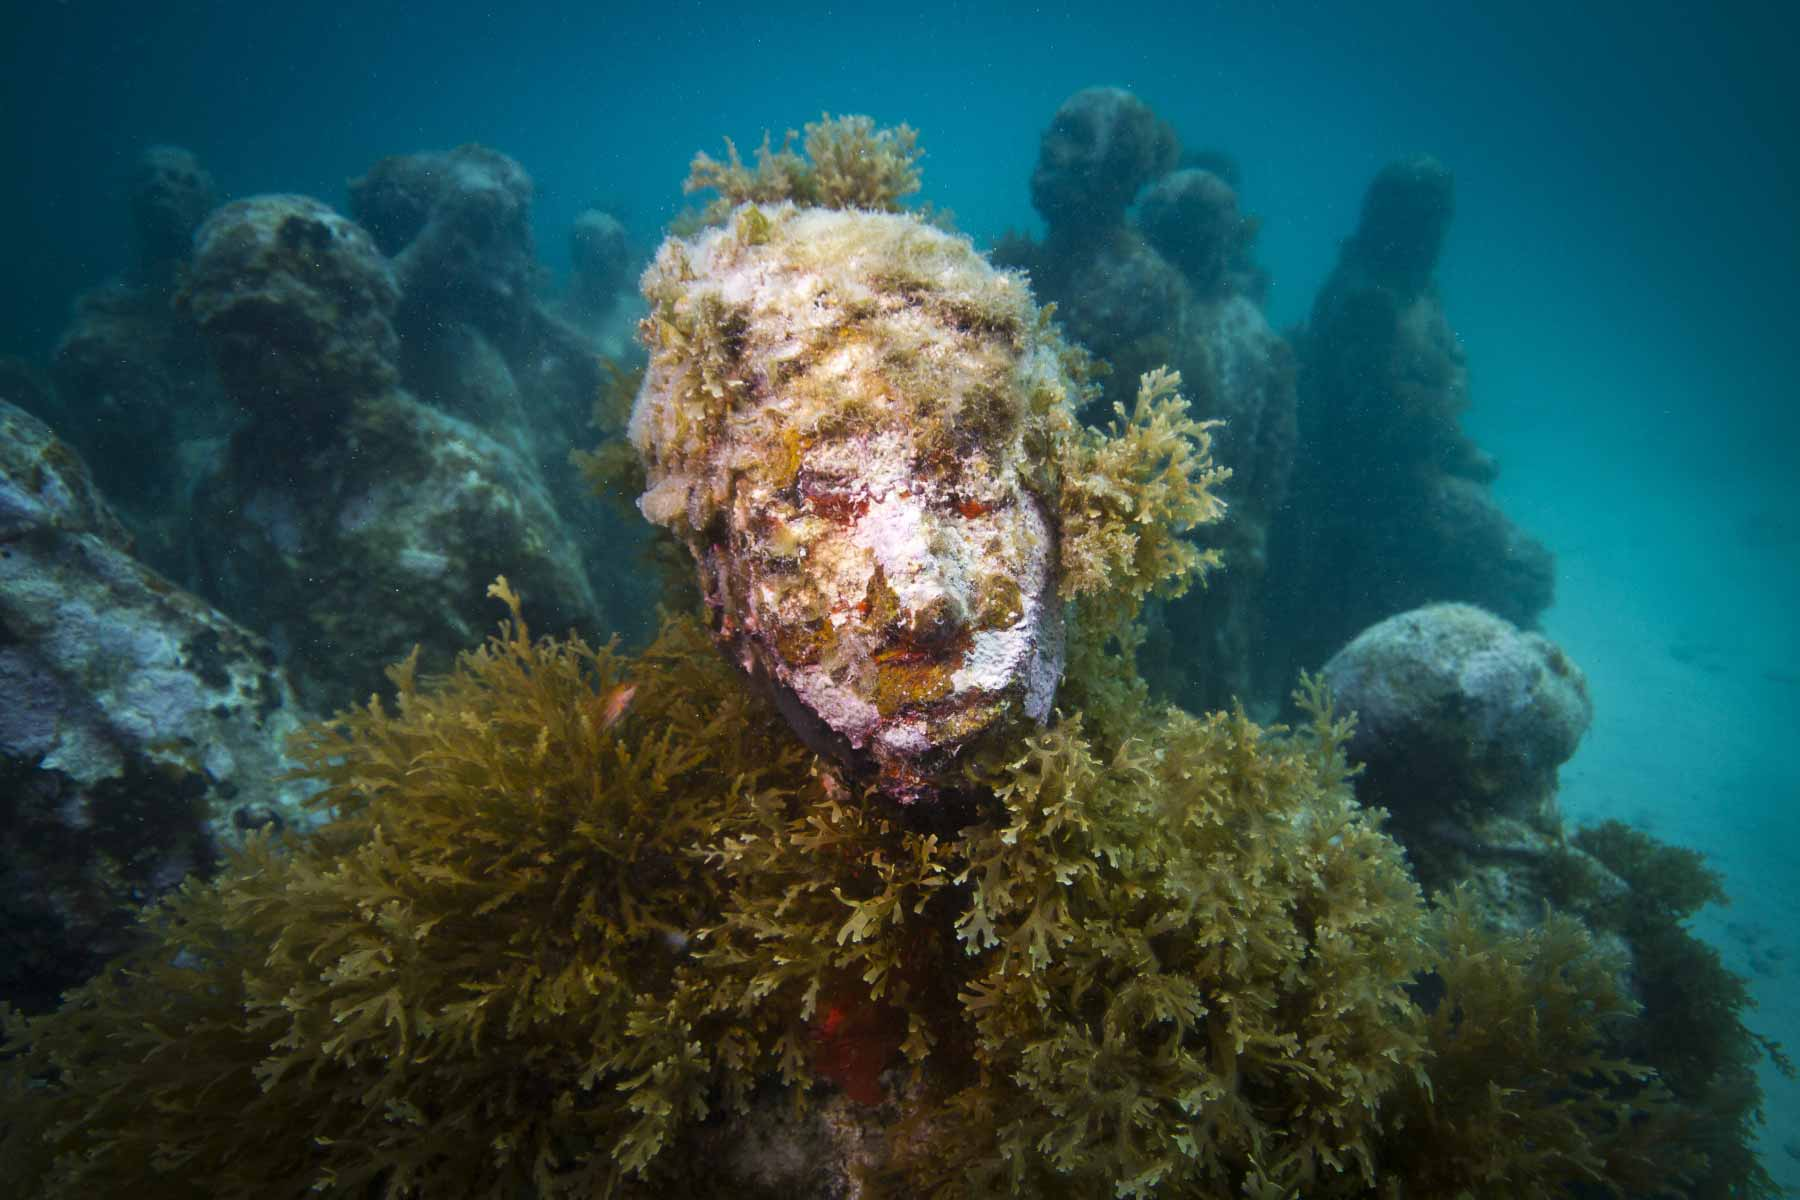 The-Silent-Evolution-Manchones-Jason-deCaires-Taylor-Sculpture